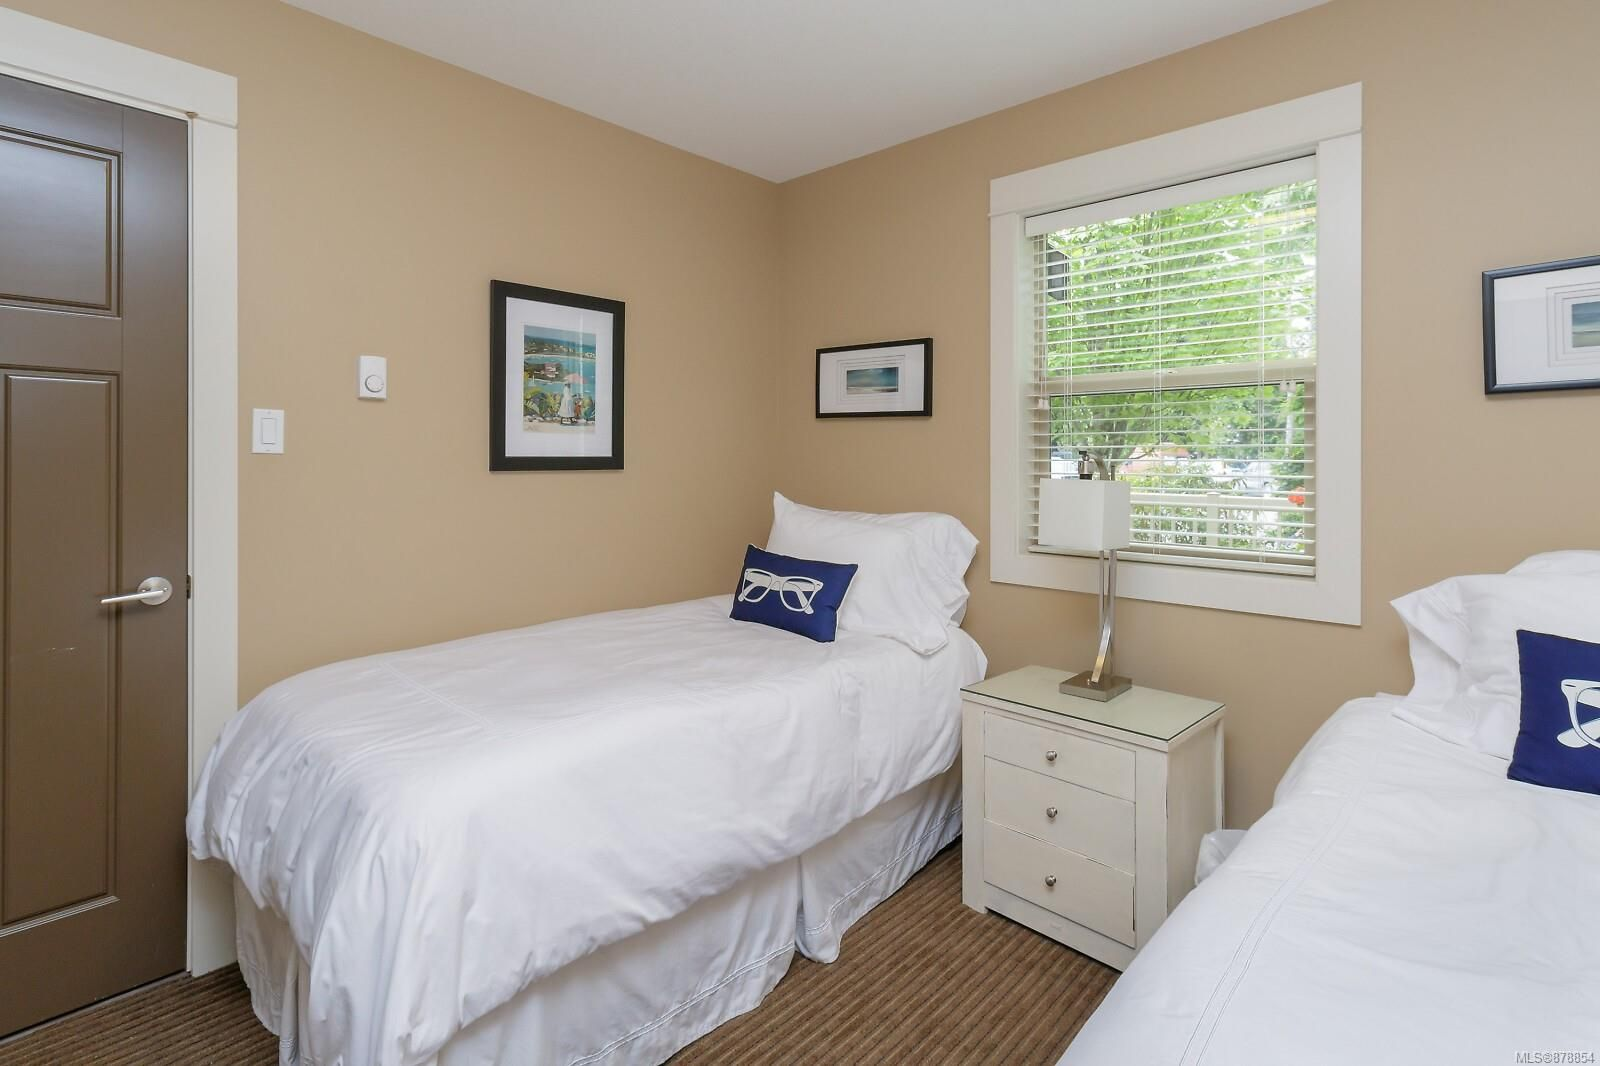 Photo 12: Photos: 223 1130 Resort Dr in : PQ Parksville Row/Townhouse for sale (Parksville/Qualicum)  : MLS®# 878854